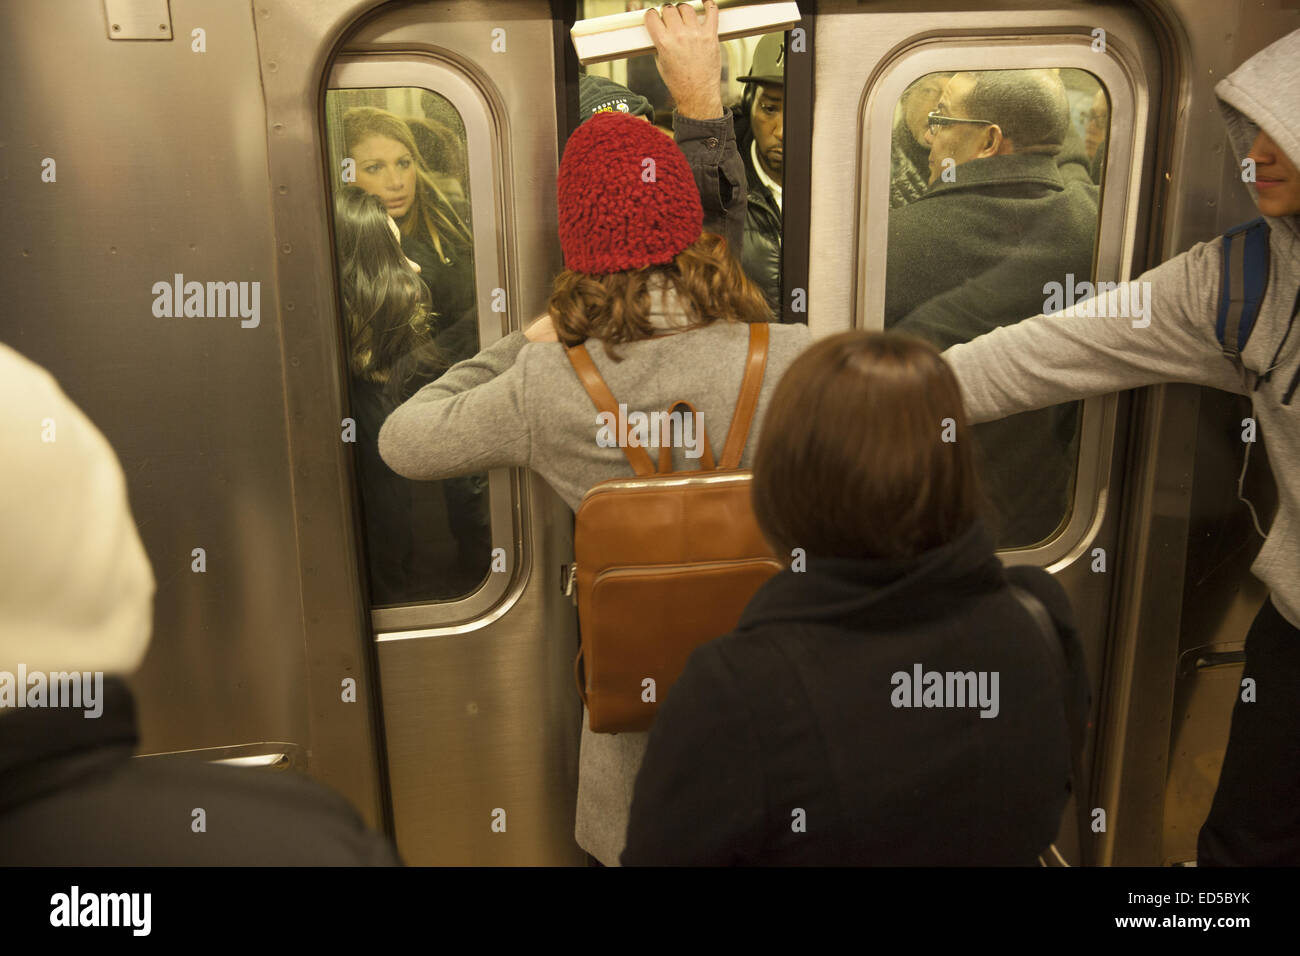 Woman tries to squeeze into a subway car when the doors were closing at the Grand Central subway station in NYC. - Stock Image